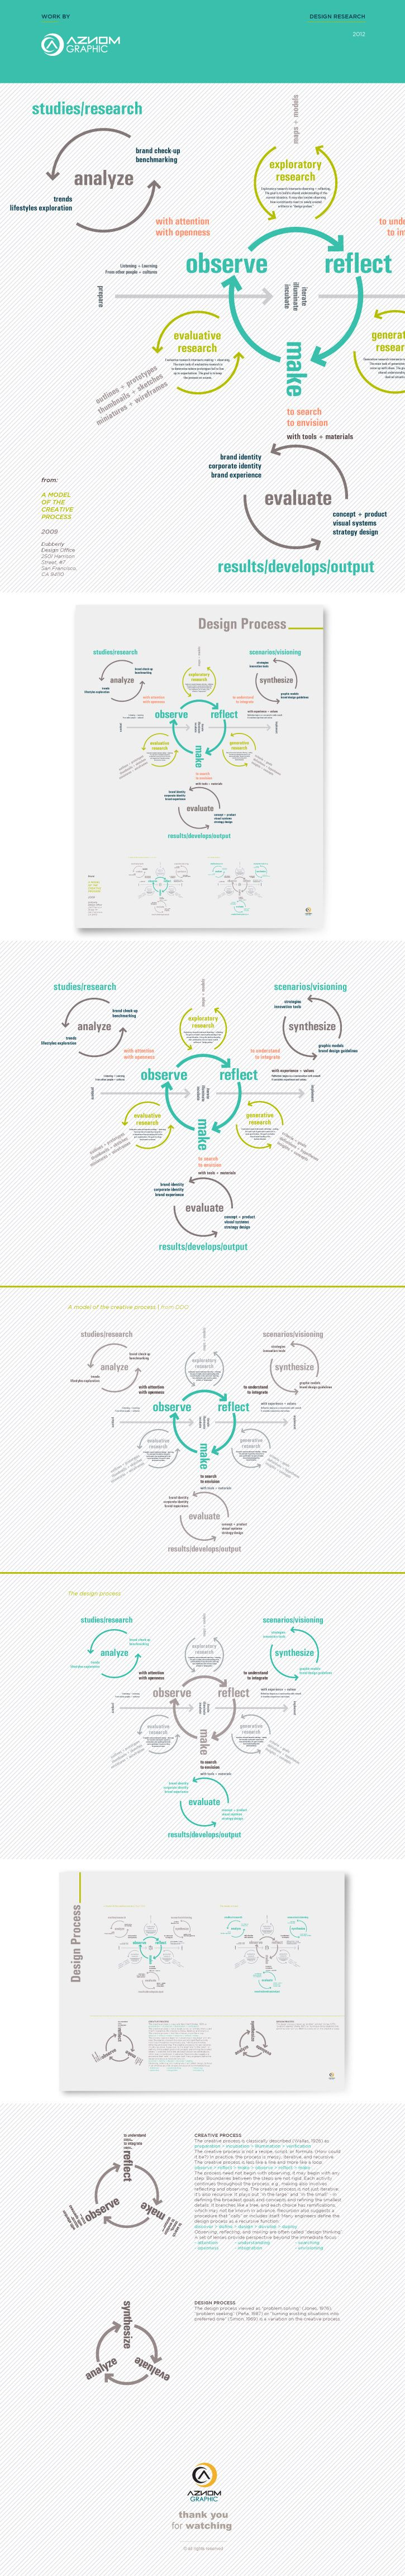 A Model of the Creative Process. #InfographicsProcess